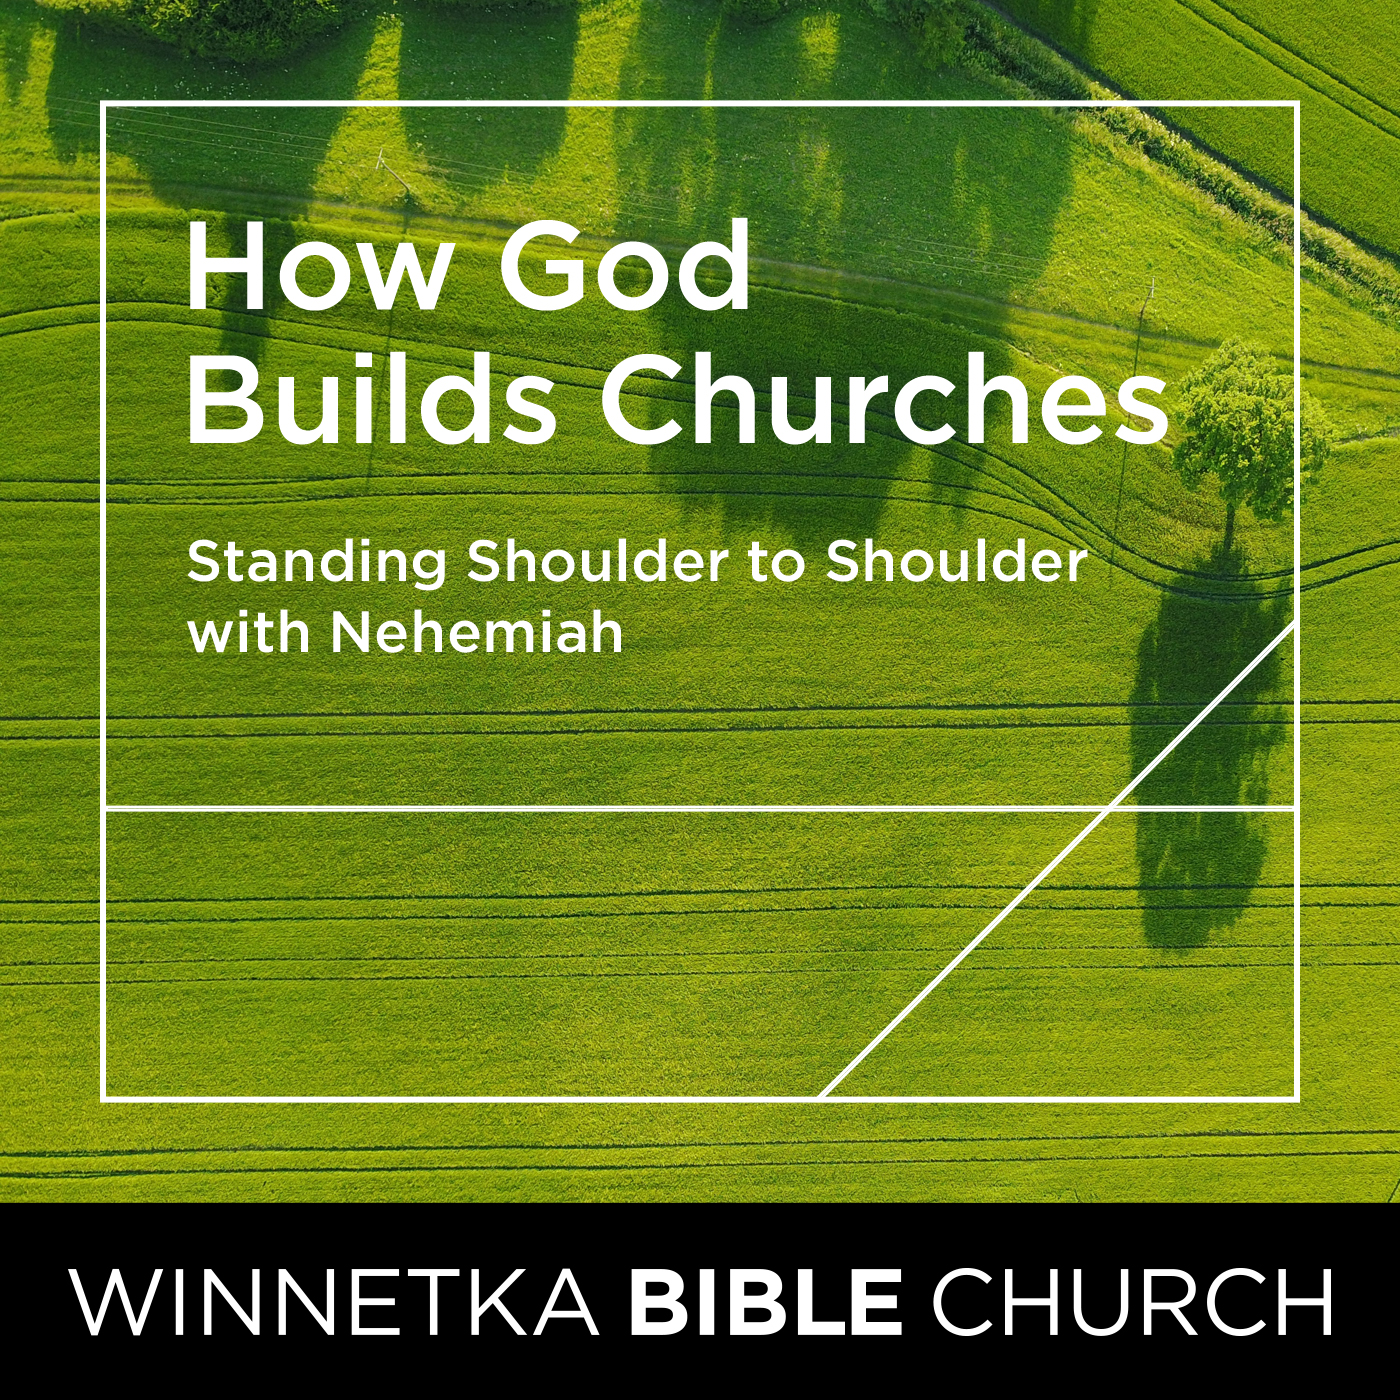 How God Builds Churches: Standing Shoulder to Shoulder With Nehemiah